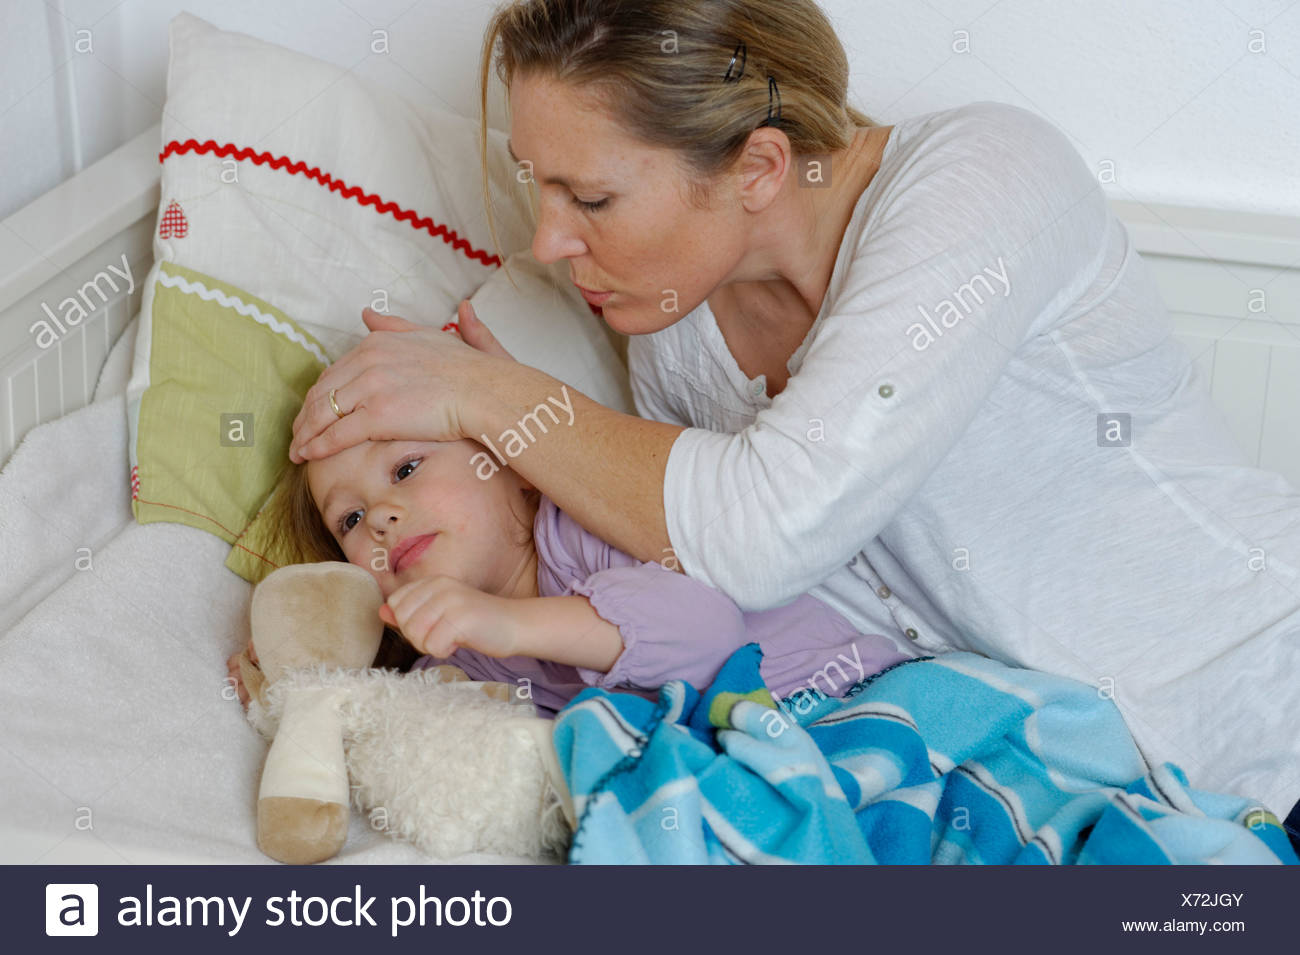 Mother taking care of her sick daughter, child lying in bed - Stock Image